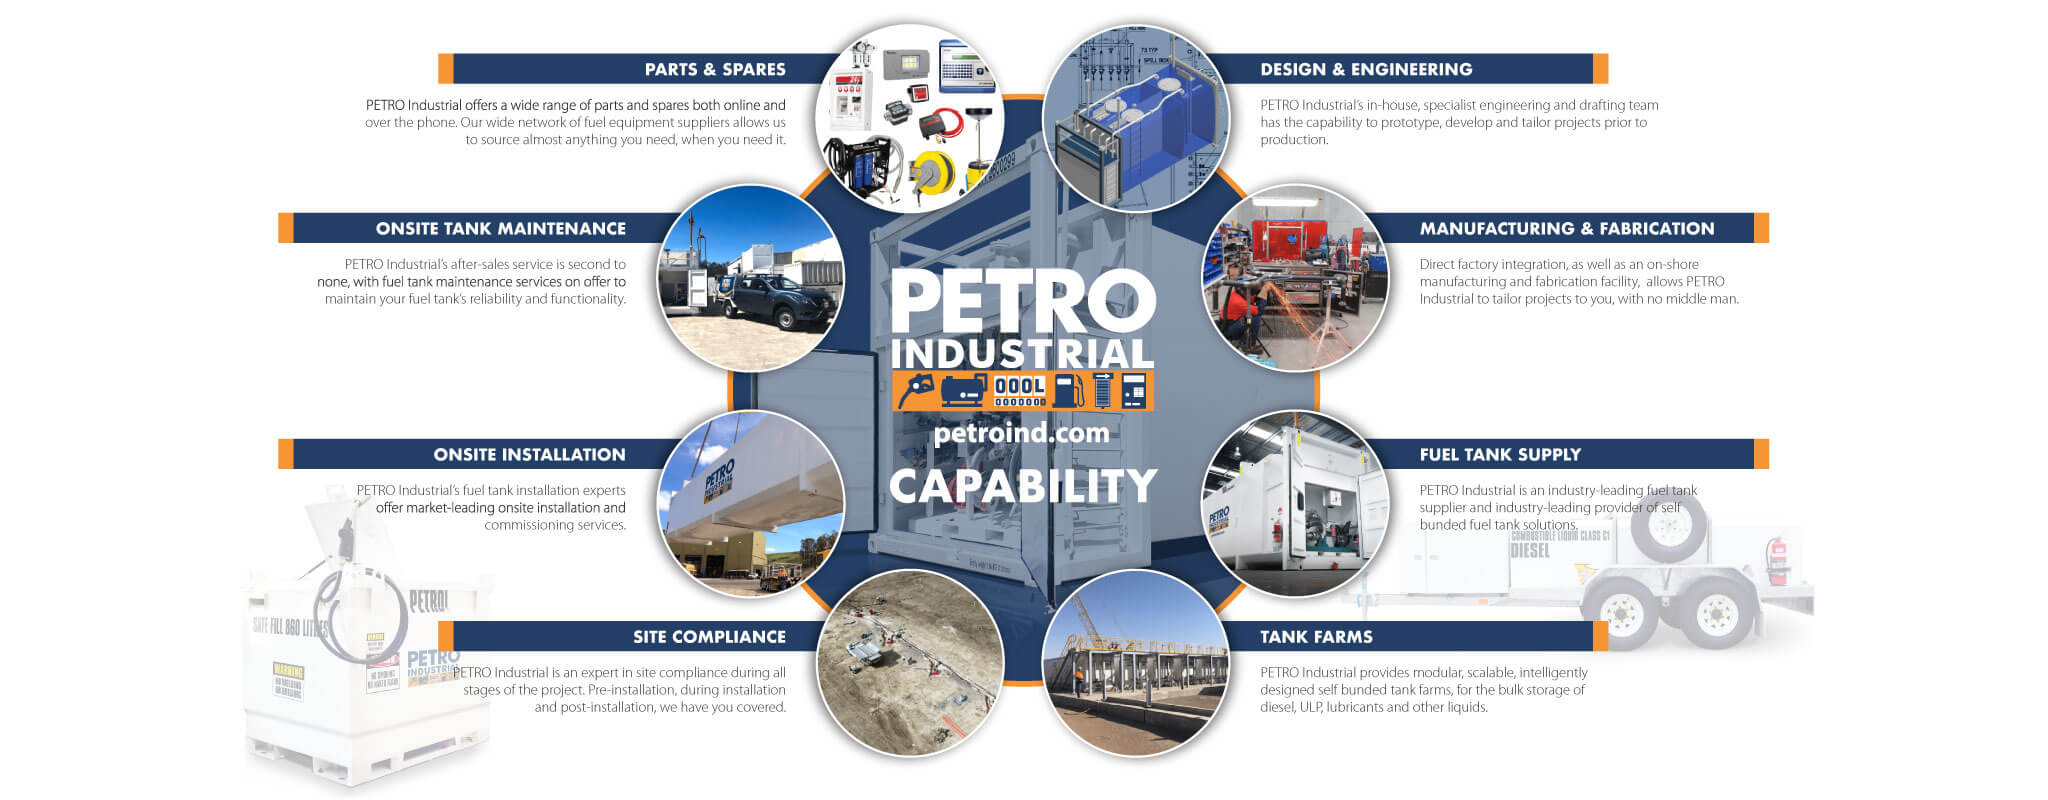 PETRO Industrial's fuel farm, self bunded tank farm, engineering and servicing capability